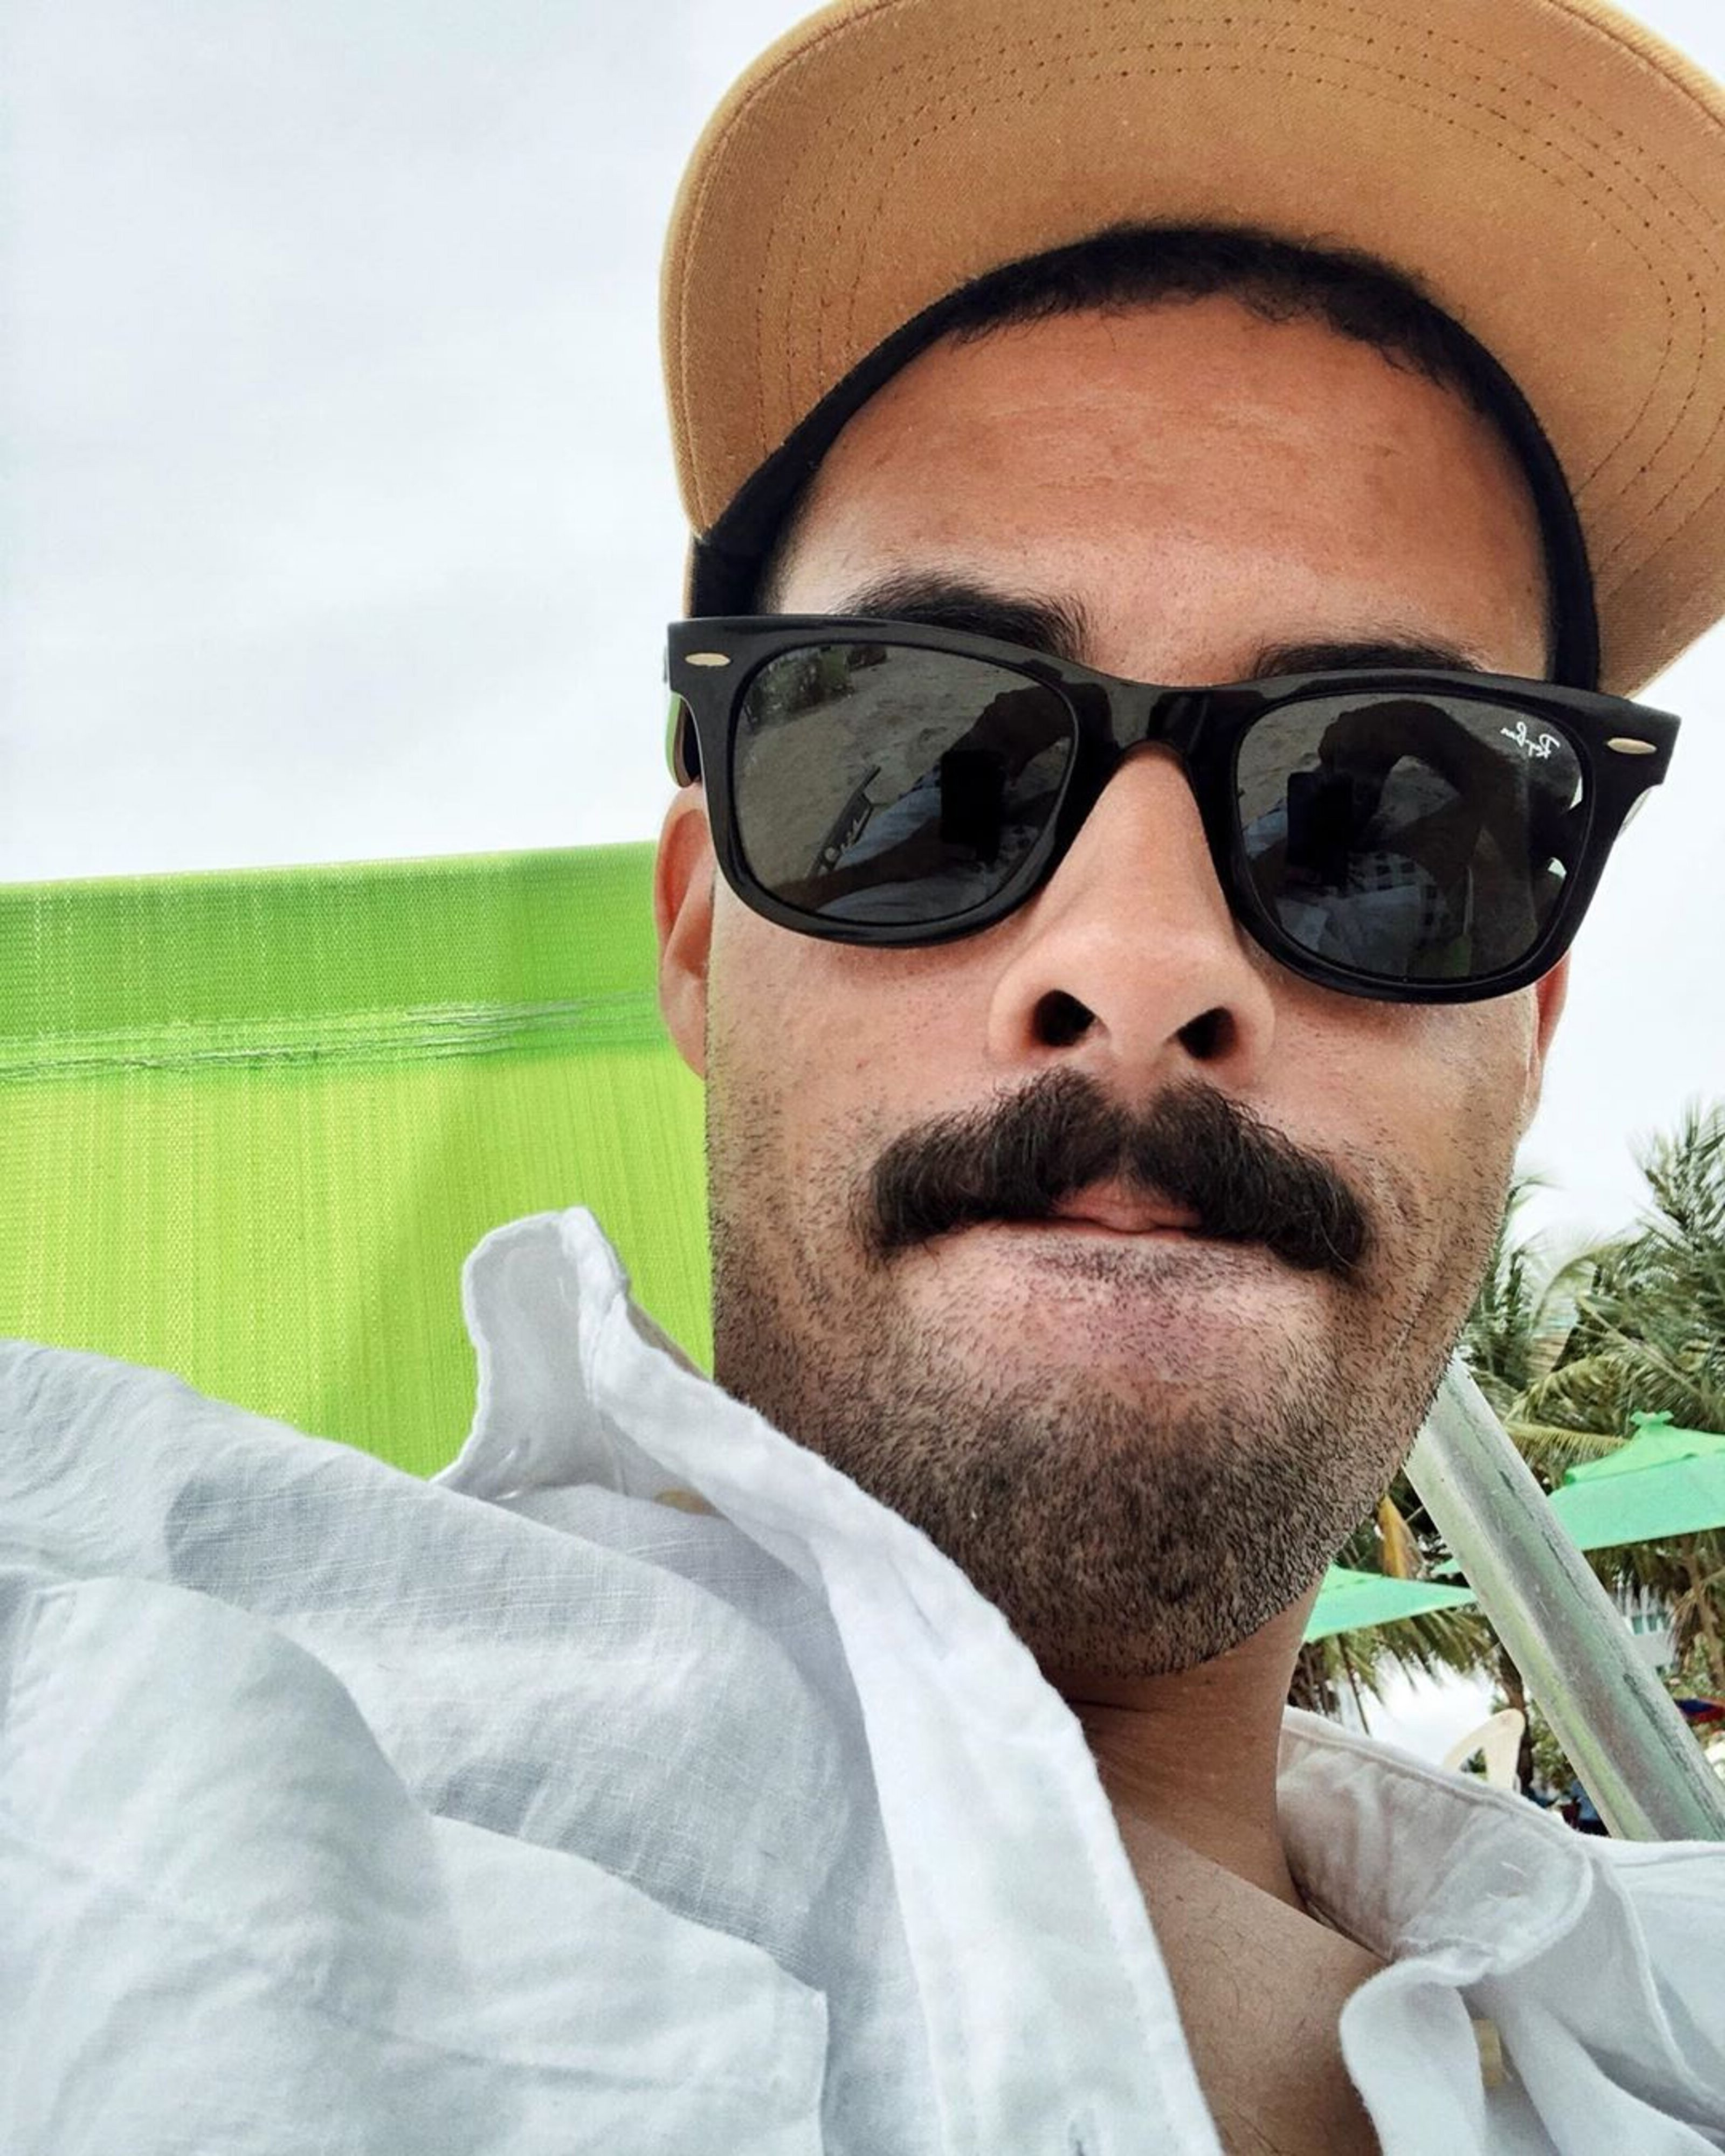 Italian handlebar mustache for stylish males.